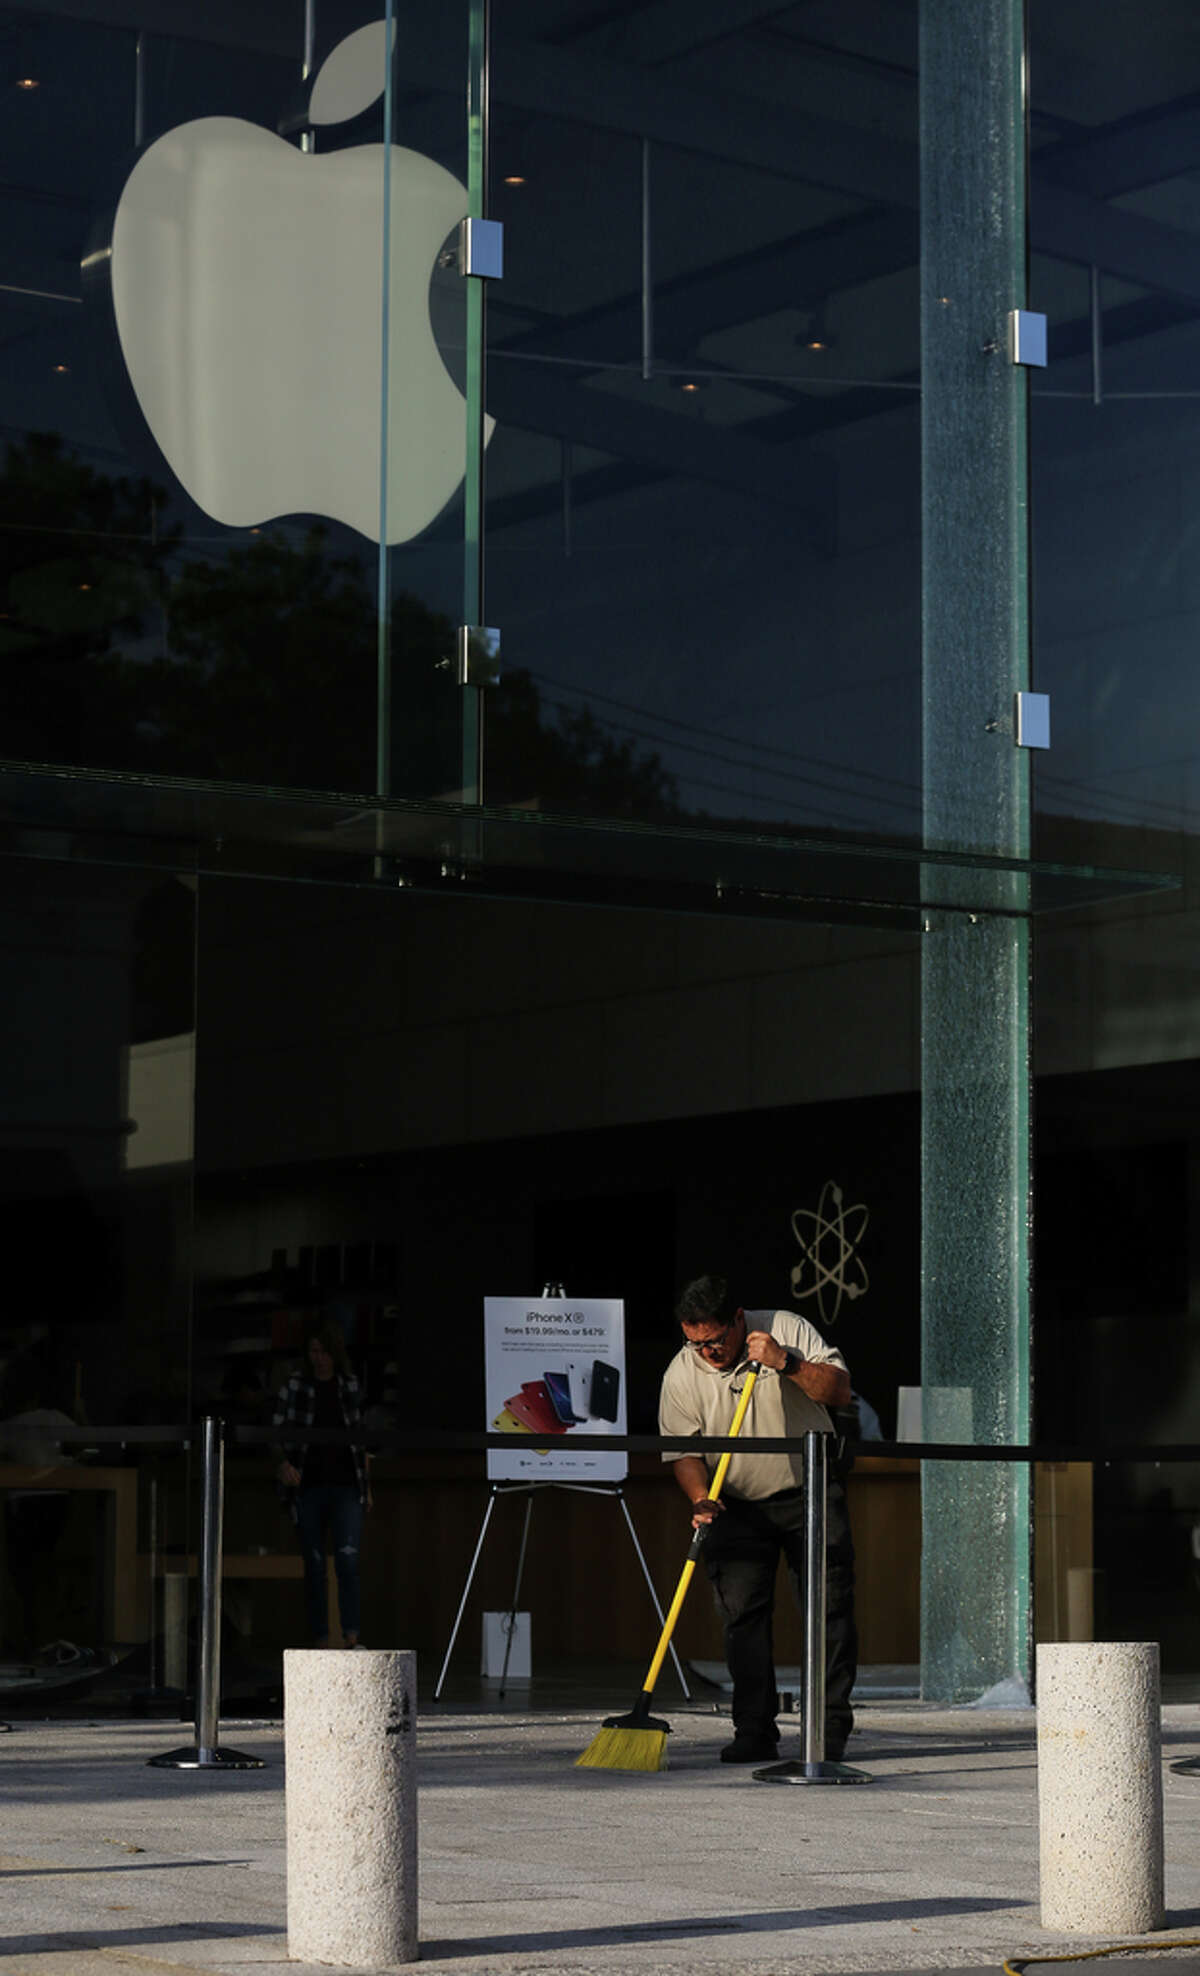 A Highland Village worker cleans up debris left from the smash and grab in which suspects drove a stolen truck into the Apple Store Wednesday, July 10, 2019, in Houston.